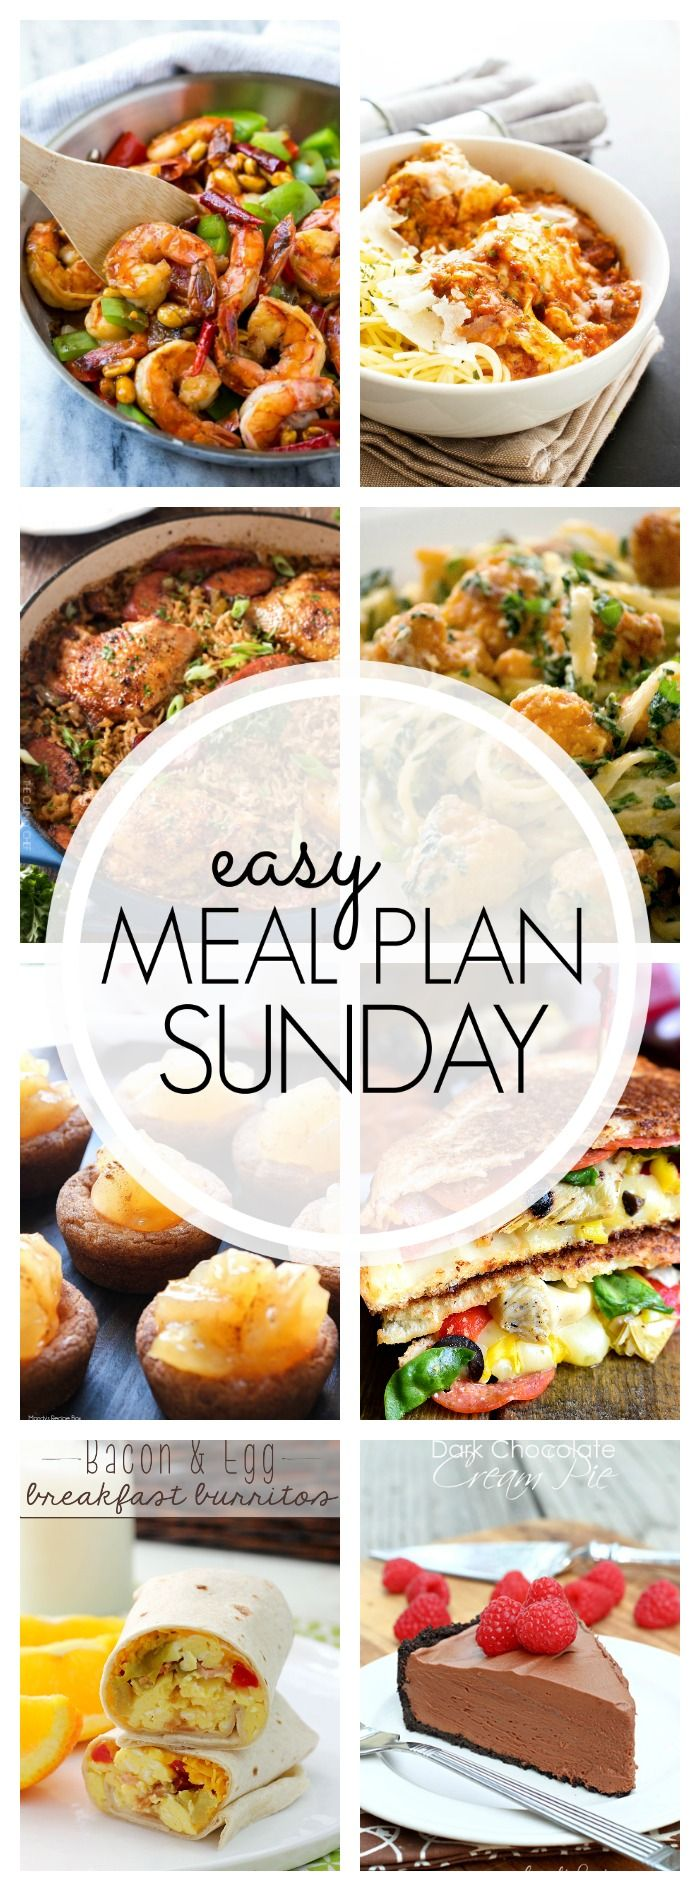 With Easy Meal Plan Sunday Week 88 - six dinners, two desserts, a breakfast and a healthy menu option will help get the week's meal planning done quickly!